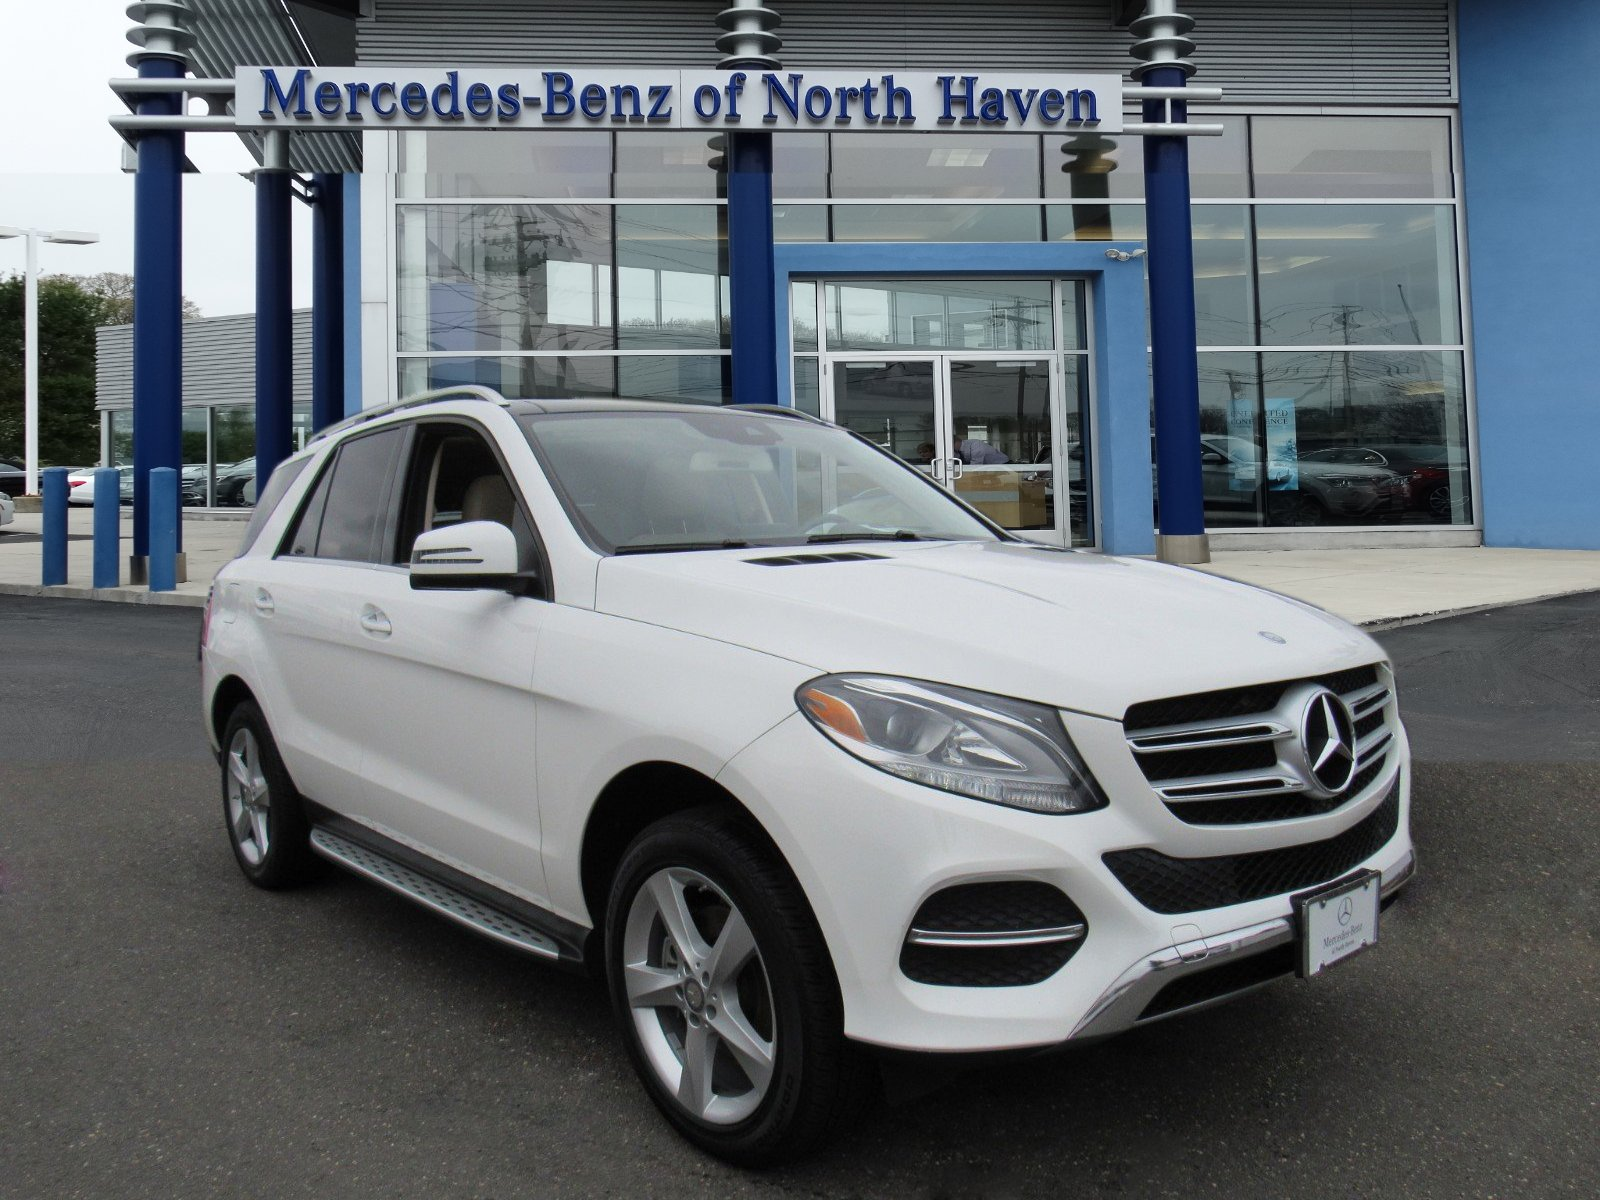 Pre Owned 2016 Mercedes Benz GLE GLE 350 SUV in North Haven M